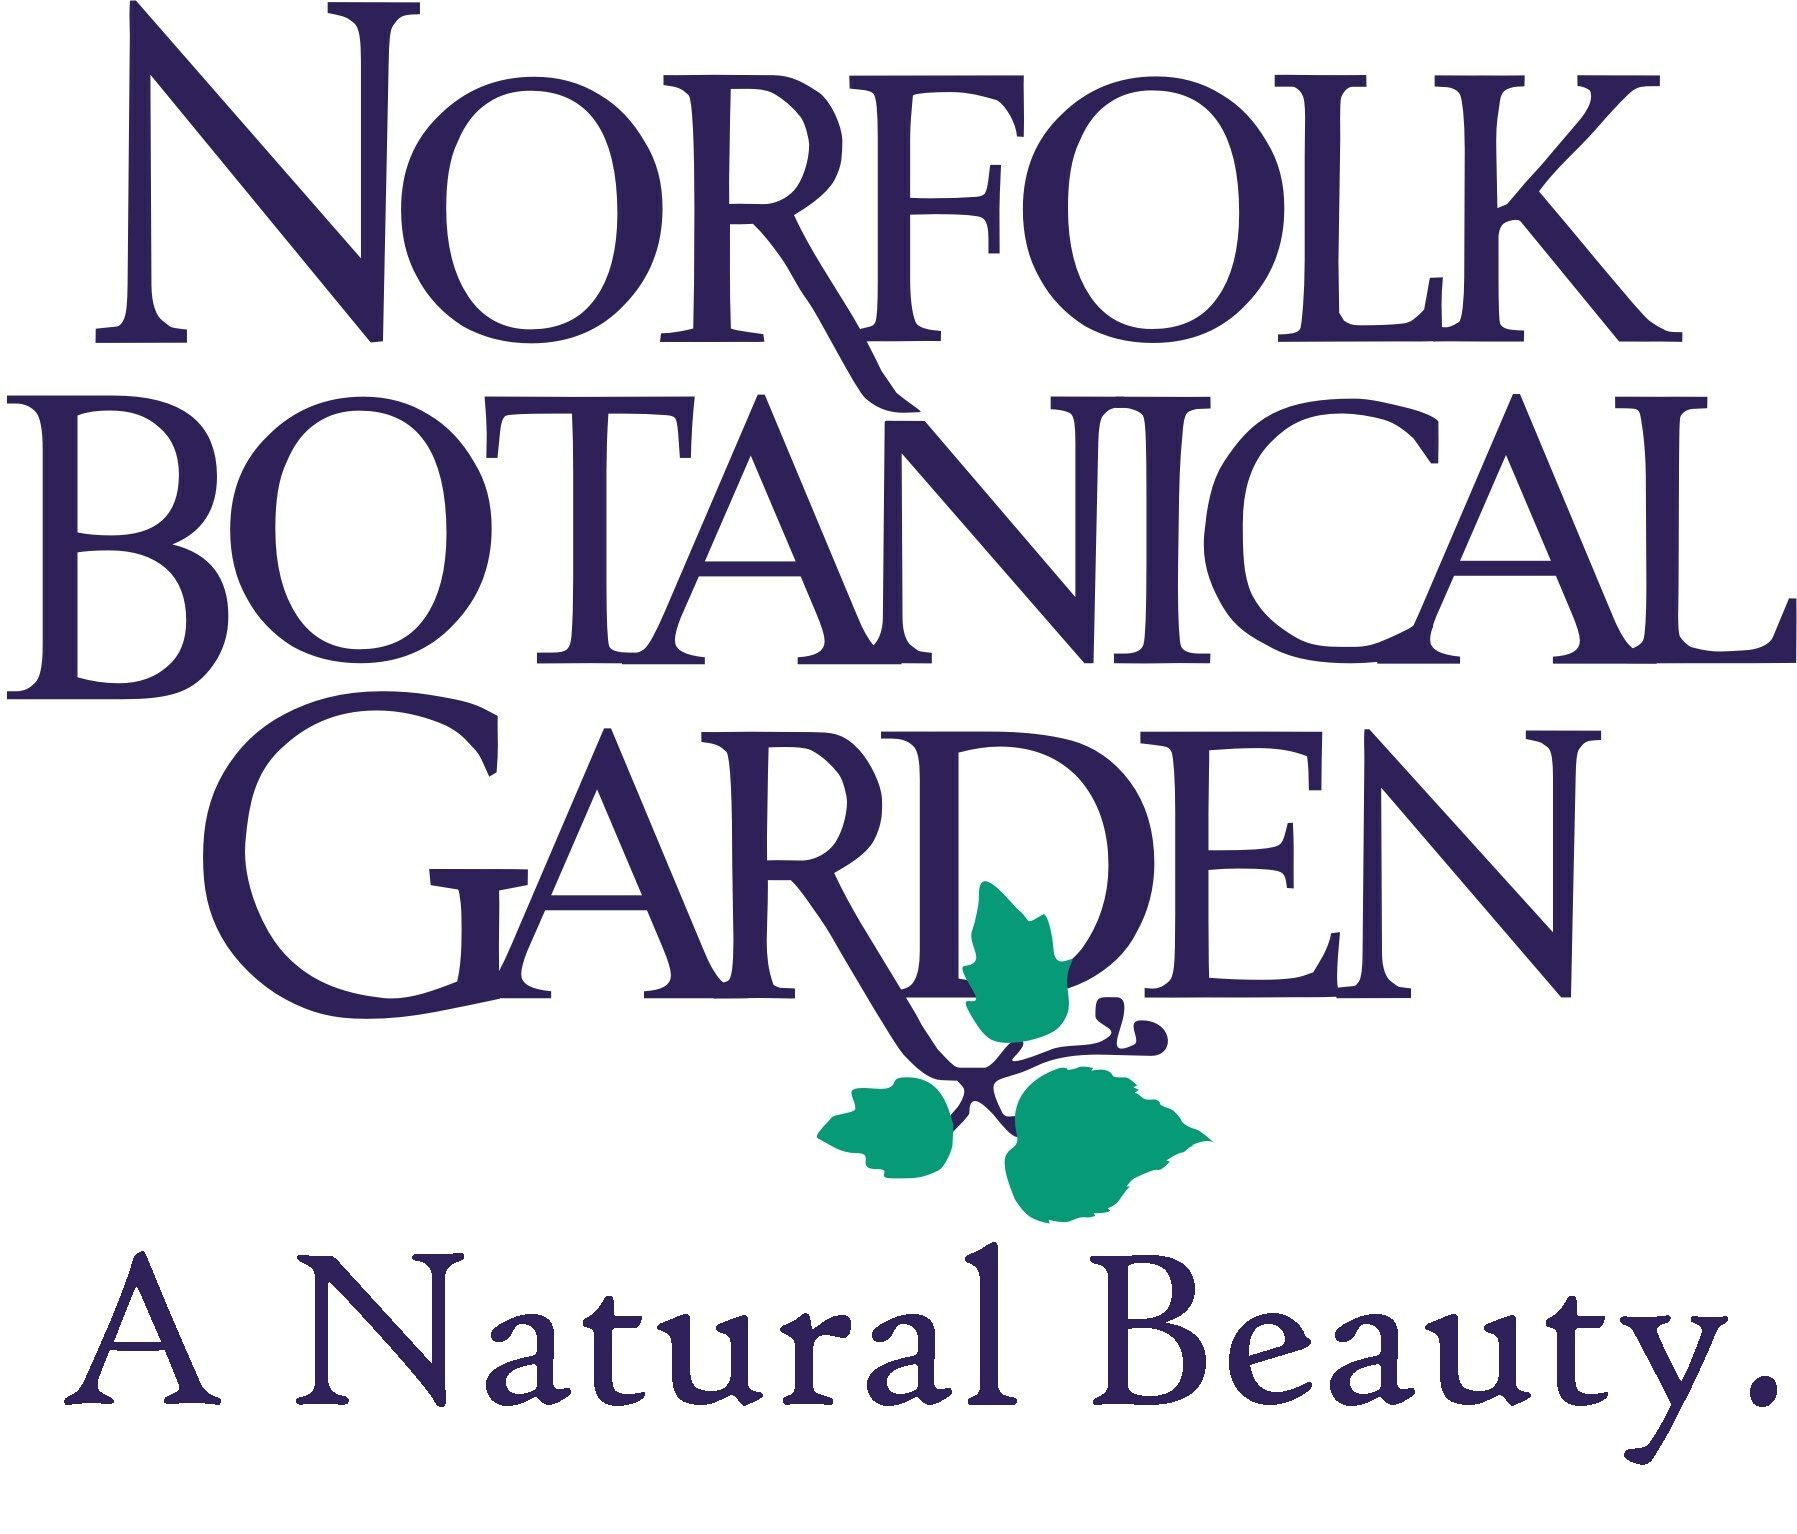 botanical logo - Google Search